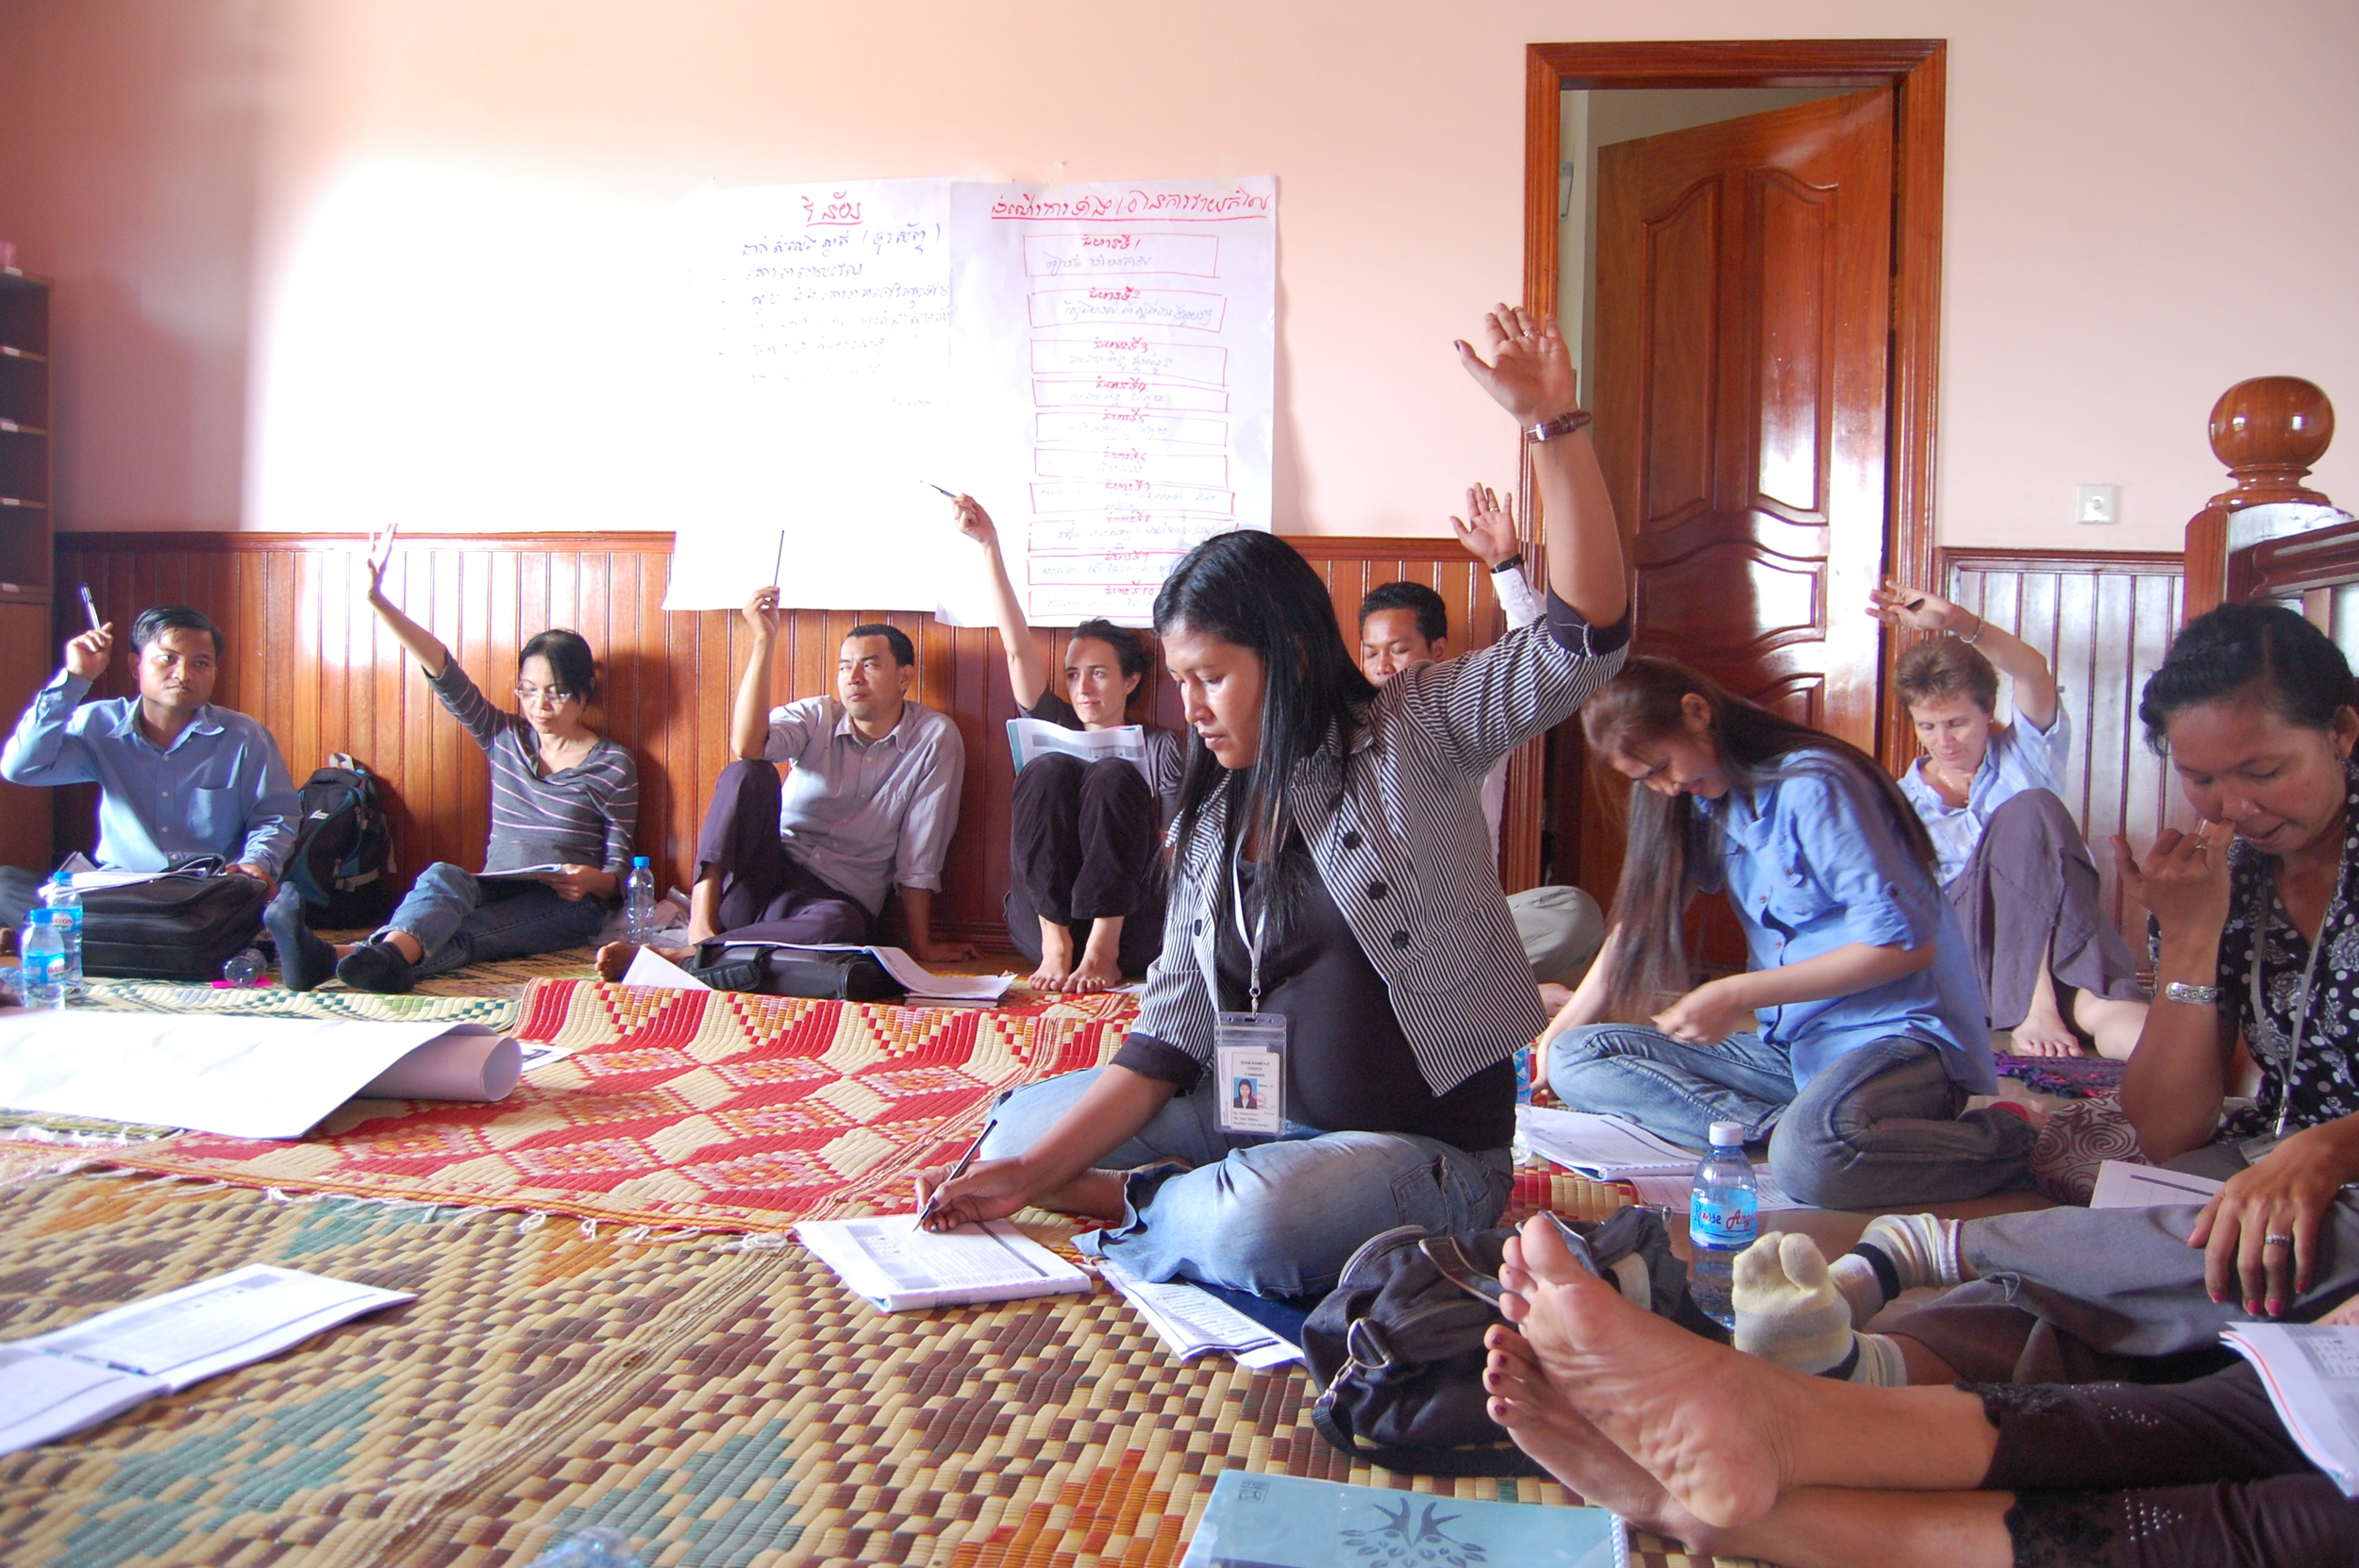 One of Chab Dai's Charter members conducts their initial self assessment as an organization